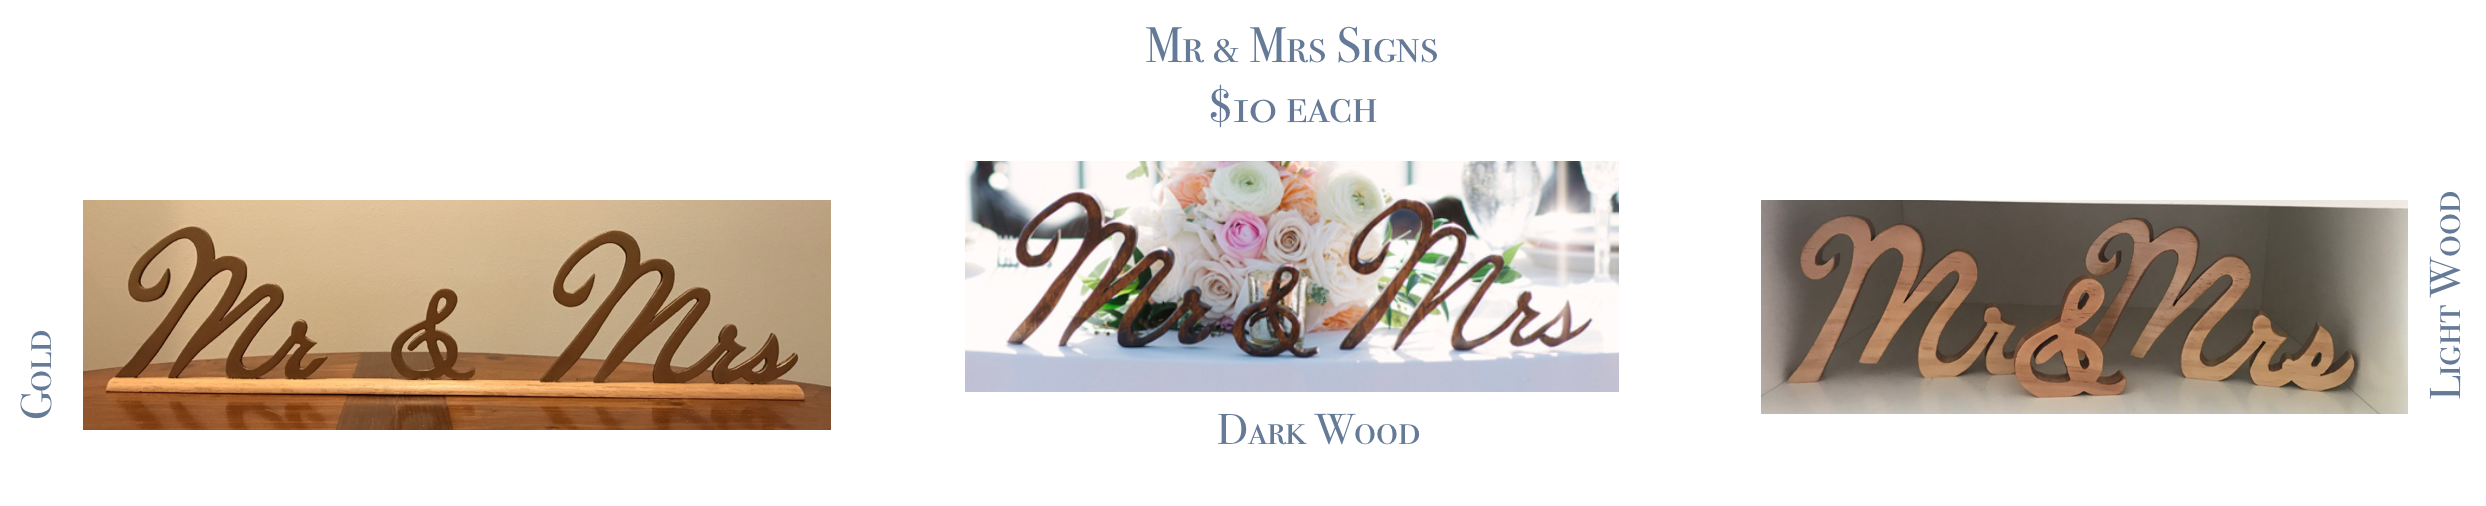 Signs_Mr & Mrs Signs $10ea.png